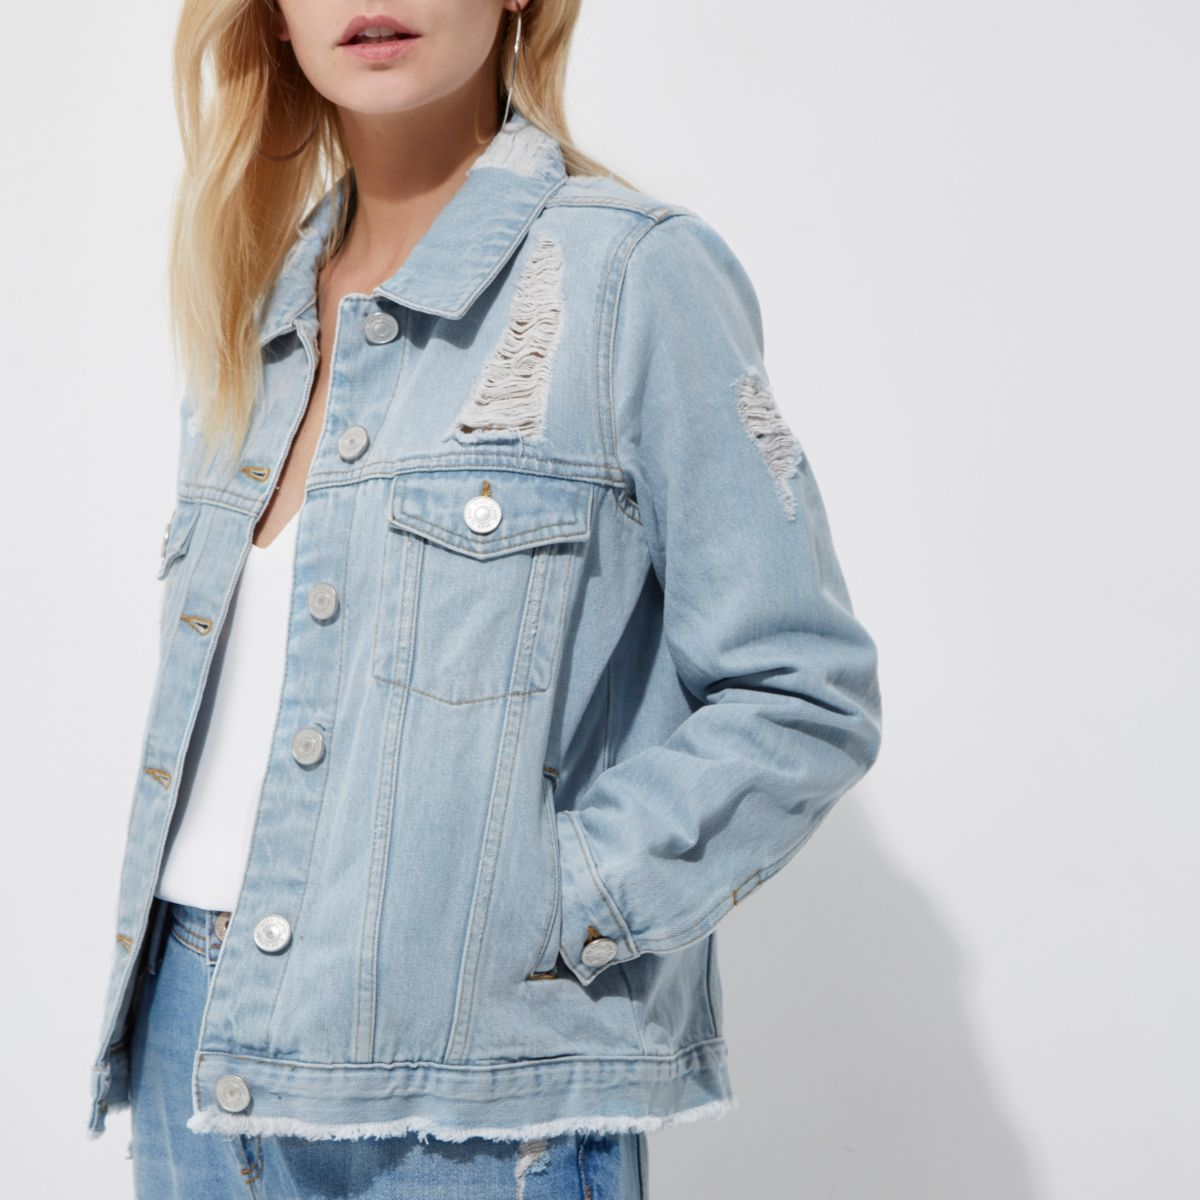 Jean jackets are an essential timeless piece that every woman needs in her closet. Oversized jean jackets are perfect for layering over sweaters while more fitted jean jackets look adorable over your favorite maurices dresses.